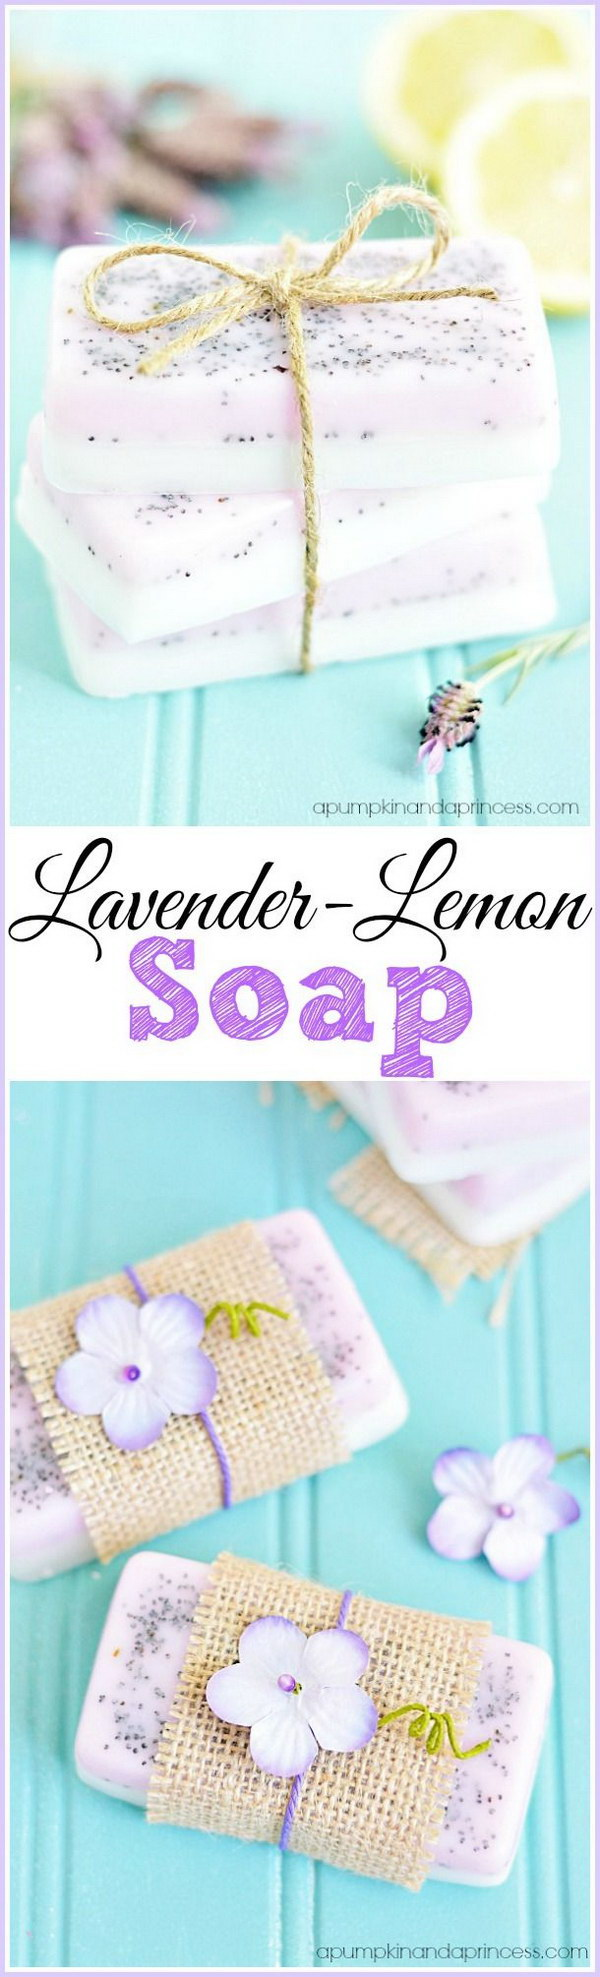 Homemade Lavender Lemon Soap.